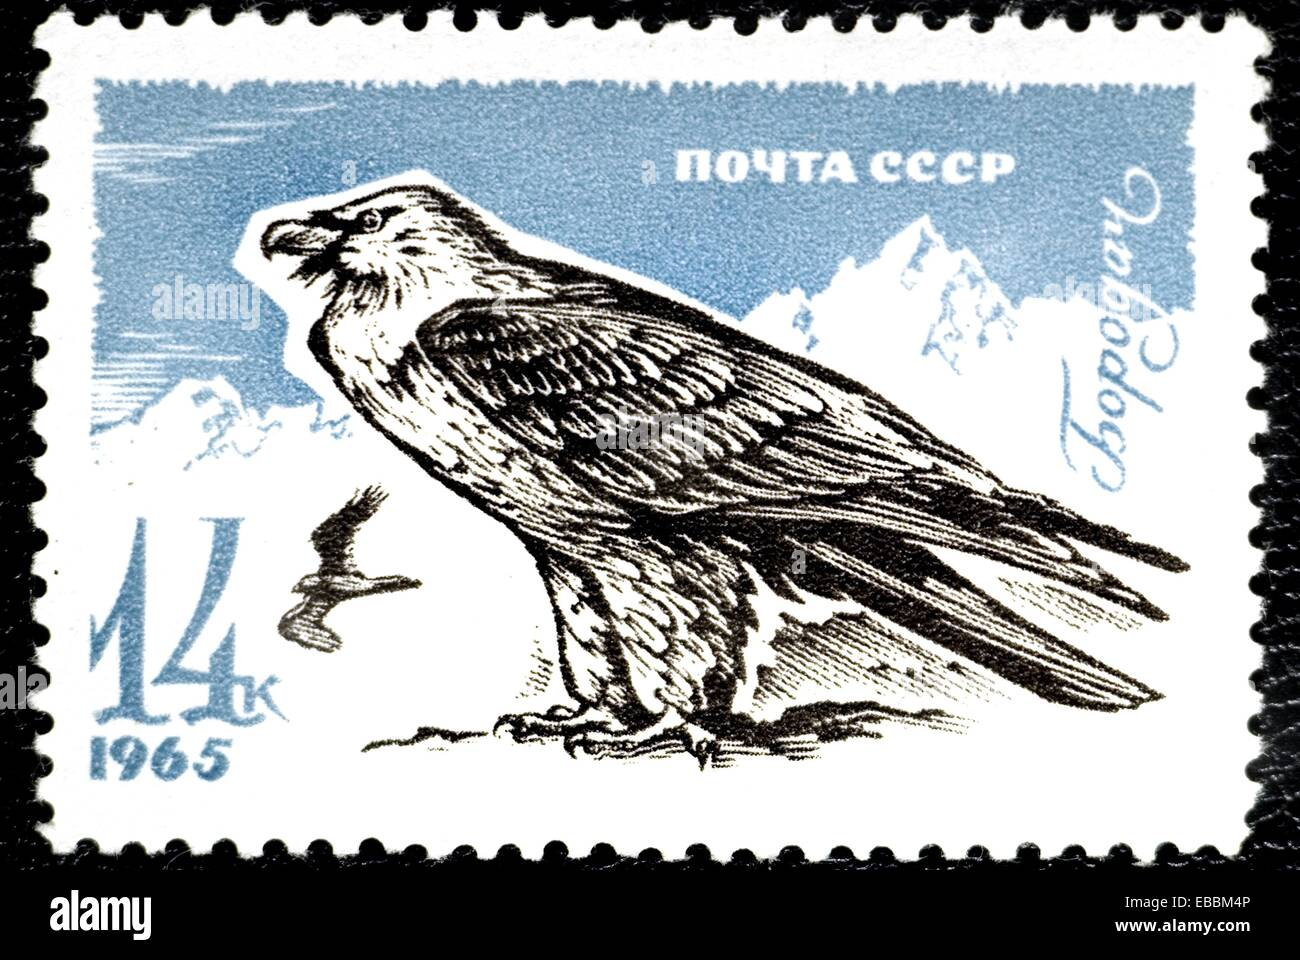 Stamp, CCCP. - Stock Image